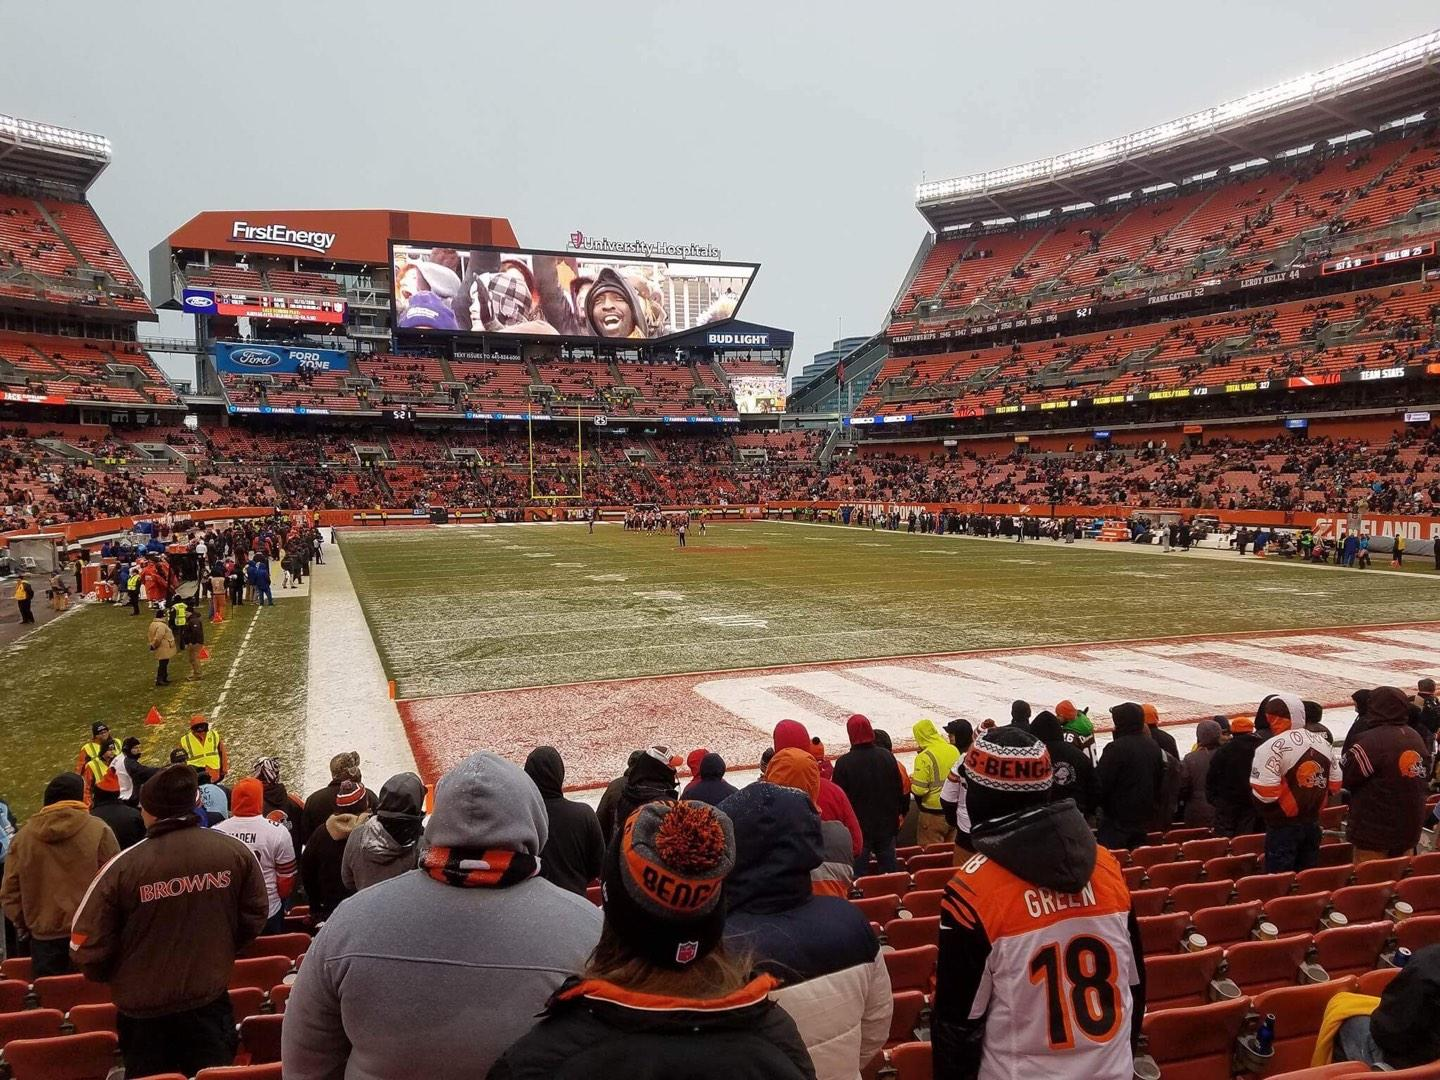 FirstEnergy Stadium Section 145 Row 11 Seat 7